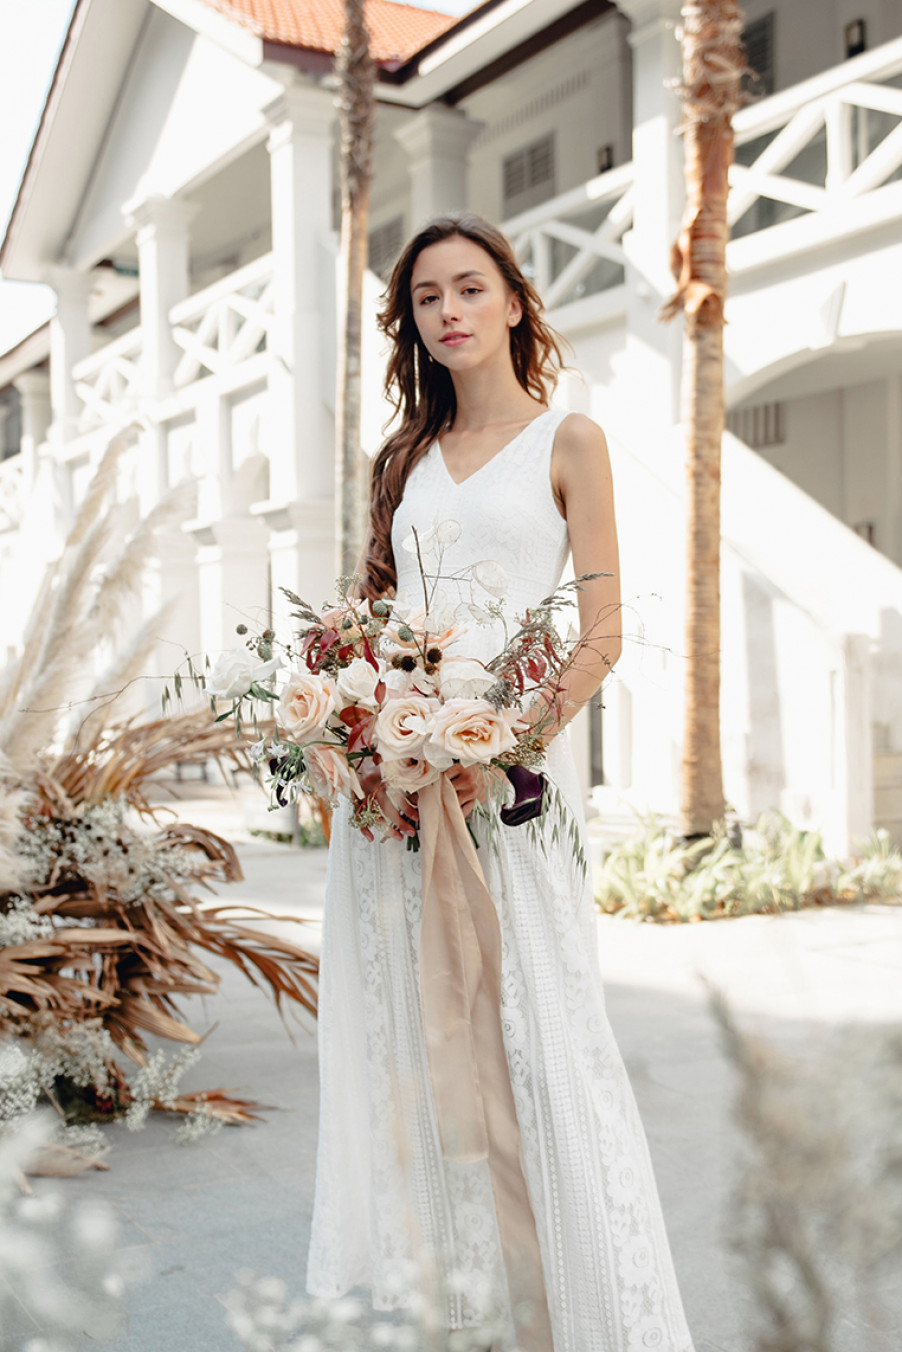 Our Story Within This Dress (White)